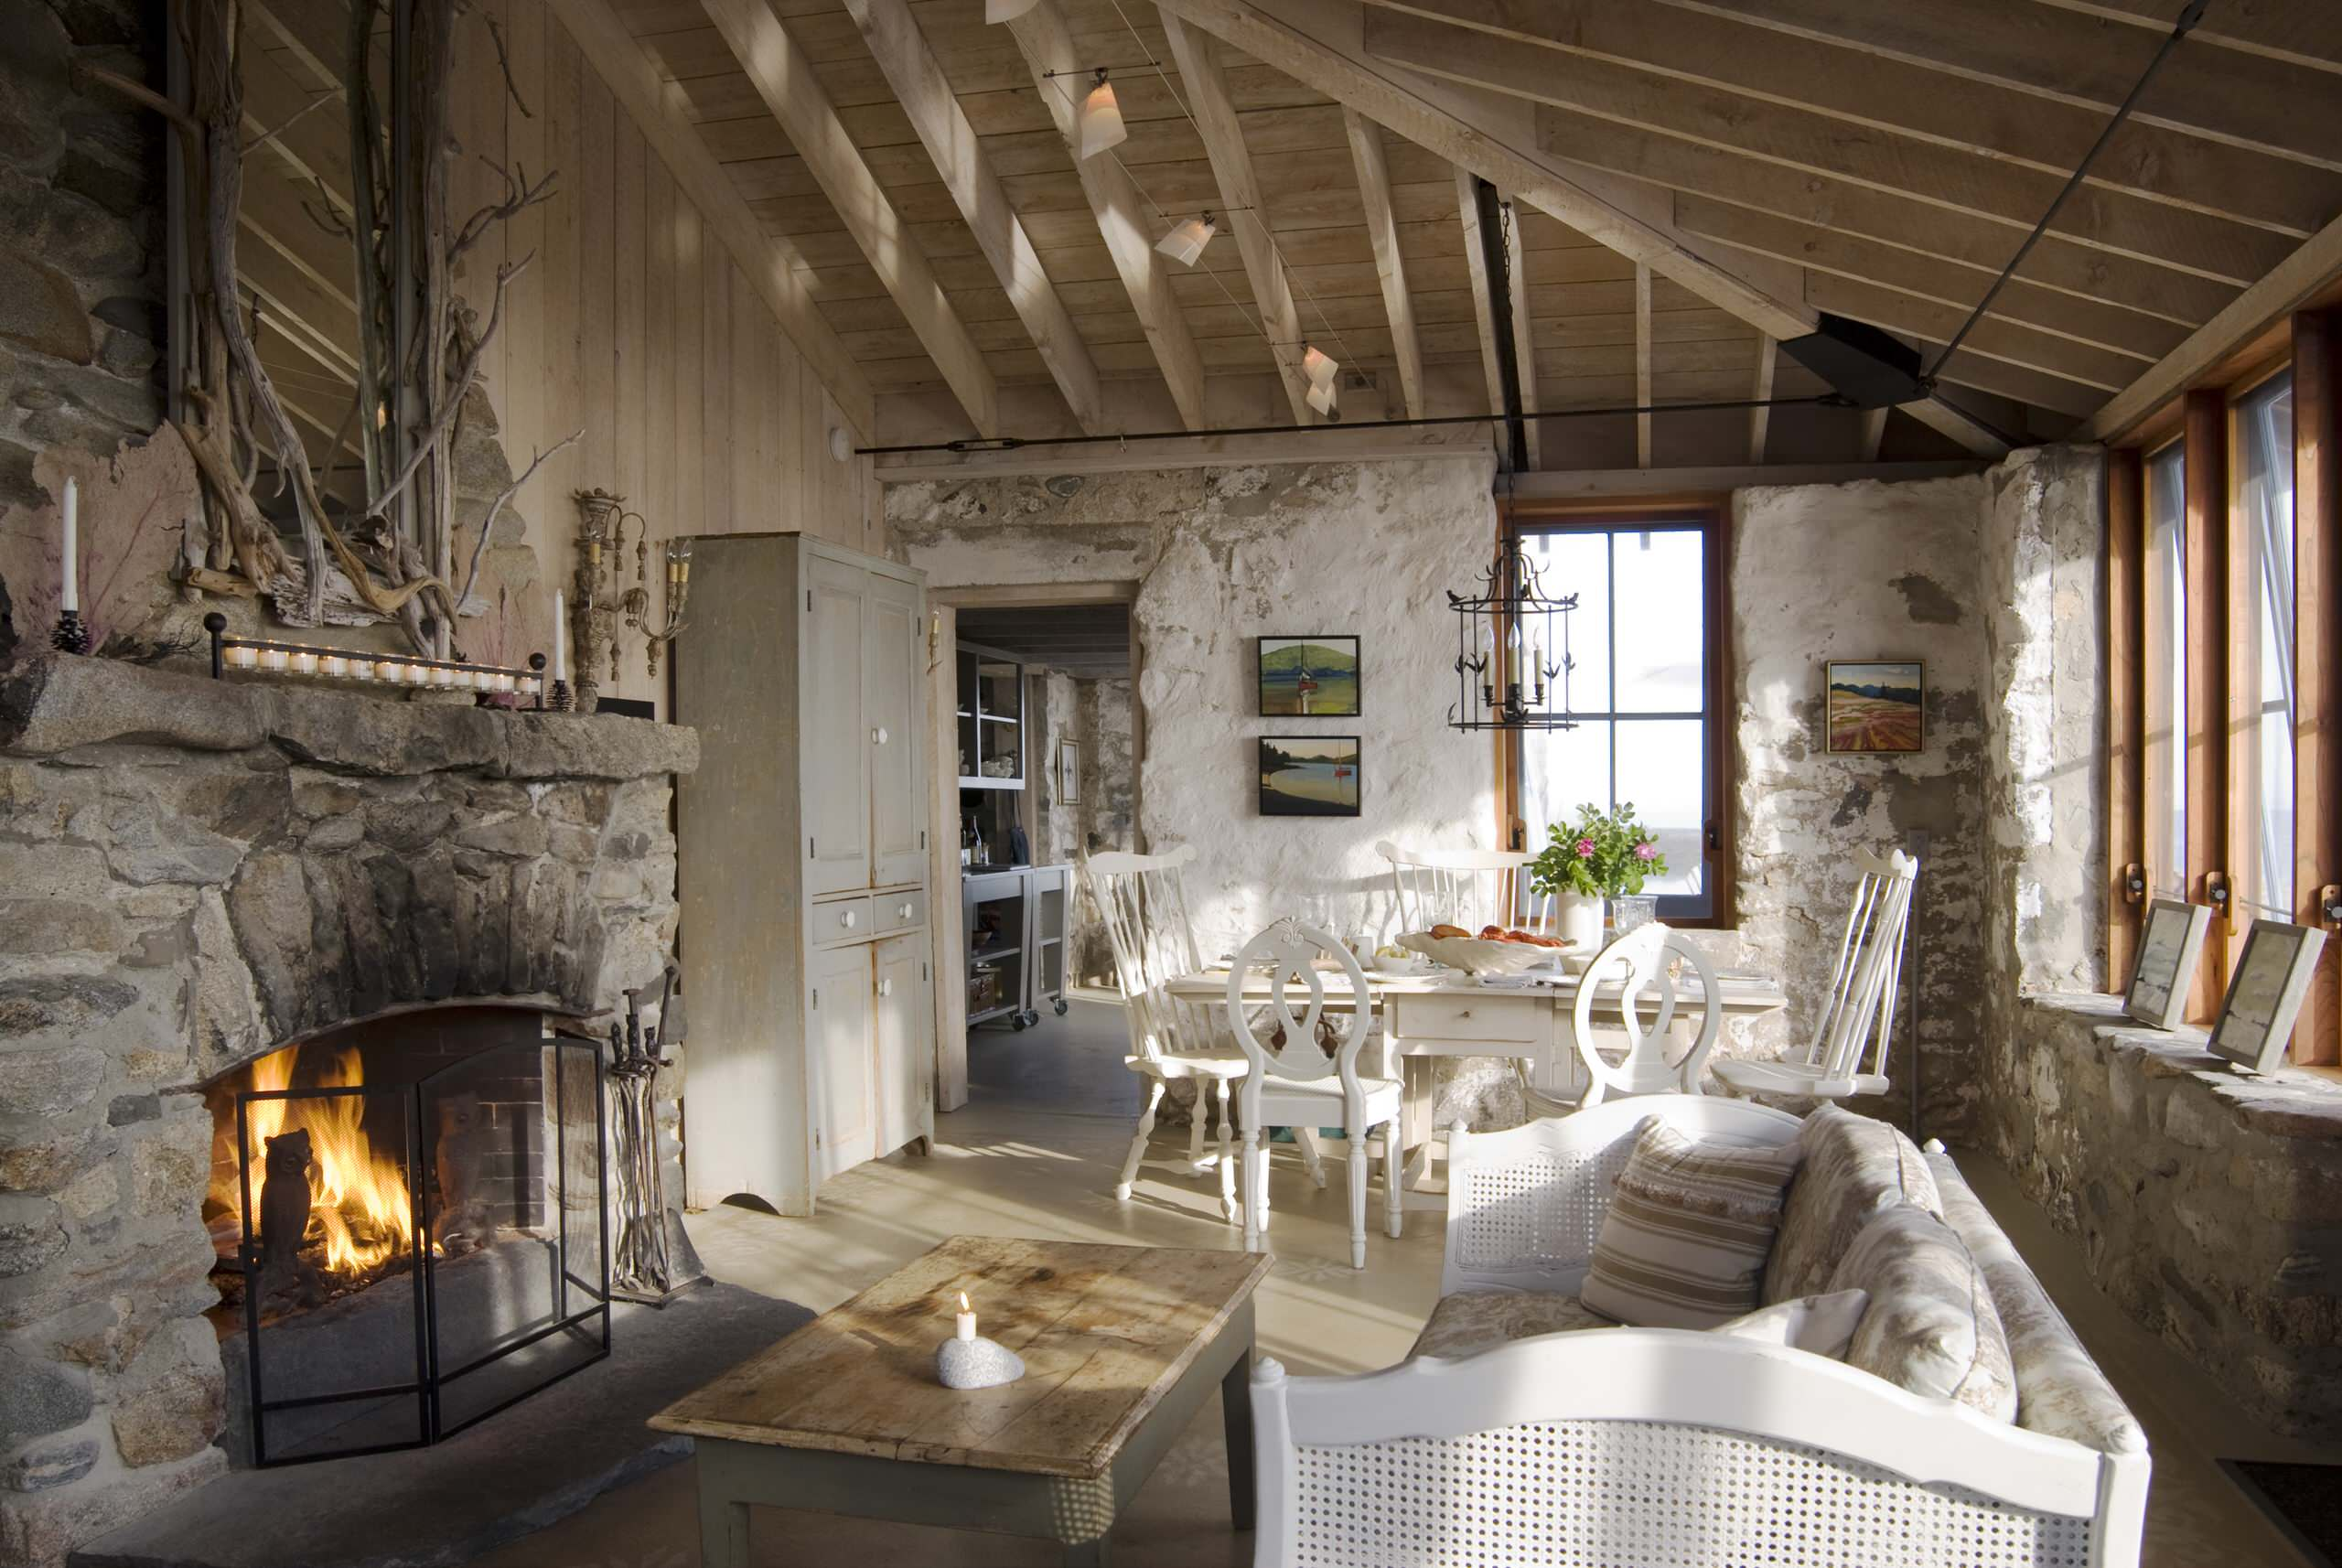 Rustic Design Ideas rustic living room decorating idea 7 Country Rustic Farmhouse Decor Living Room White Wash Walls Fireplace Stone Cottage Neutral Cream Beige